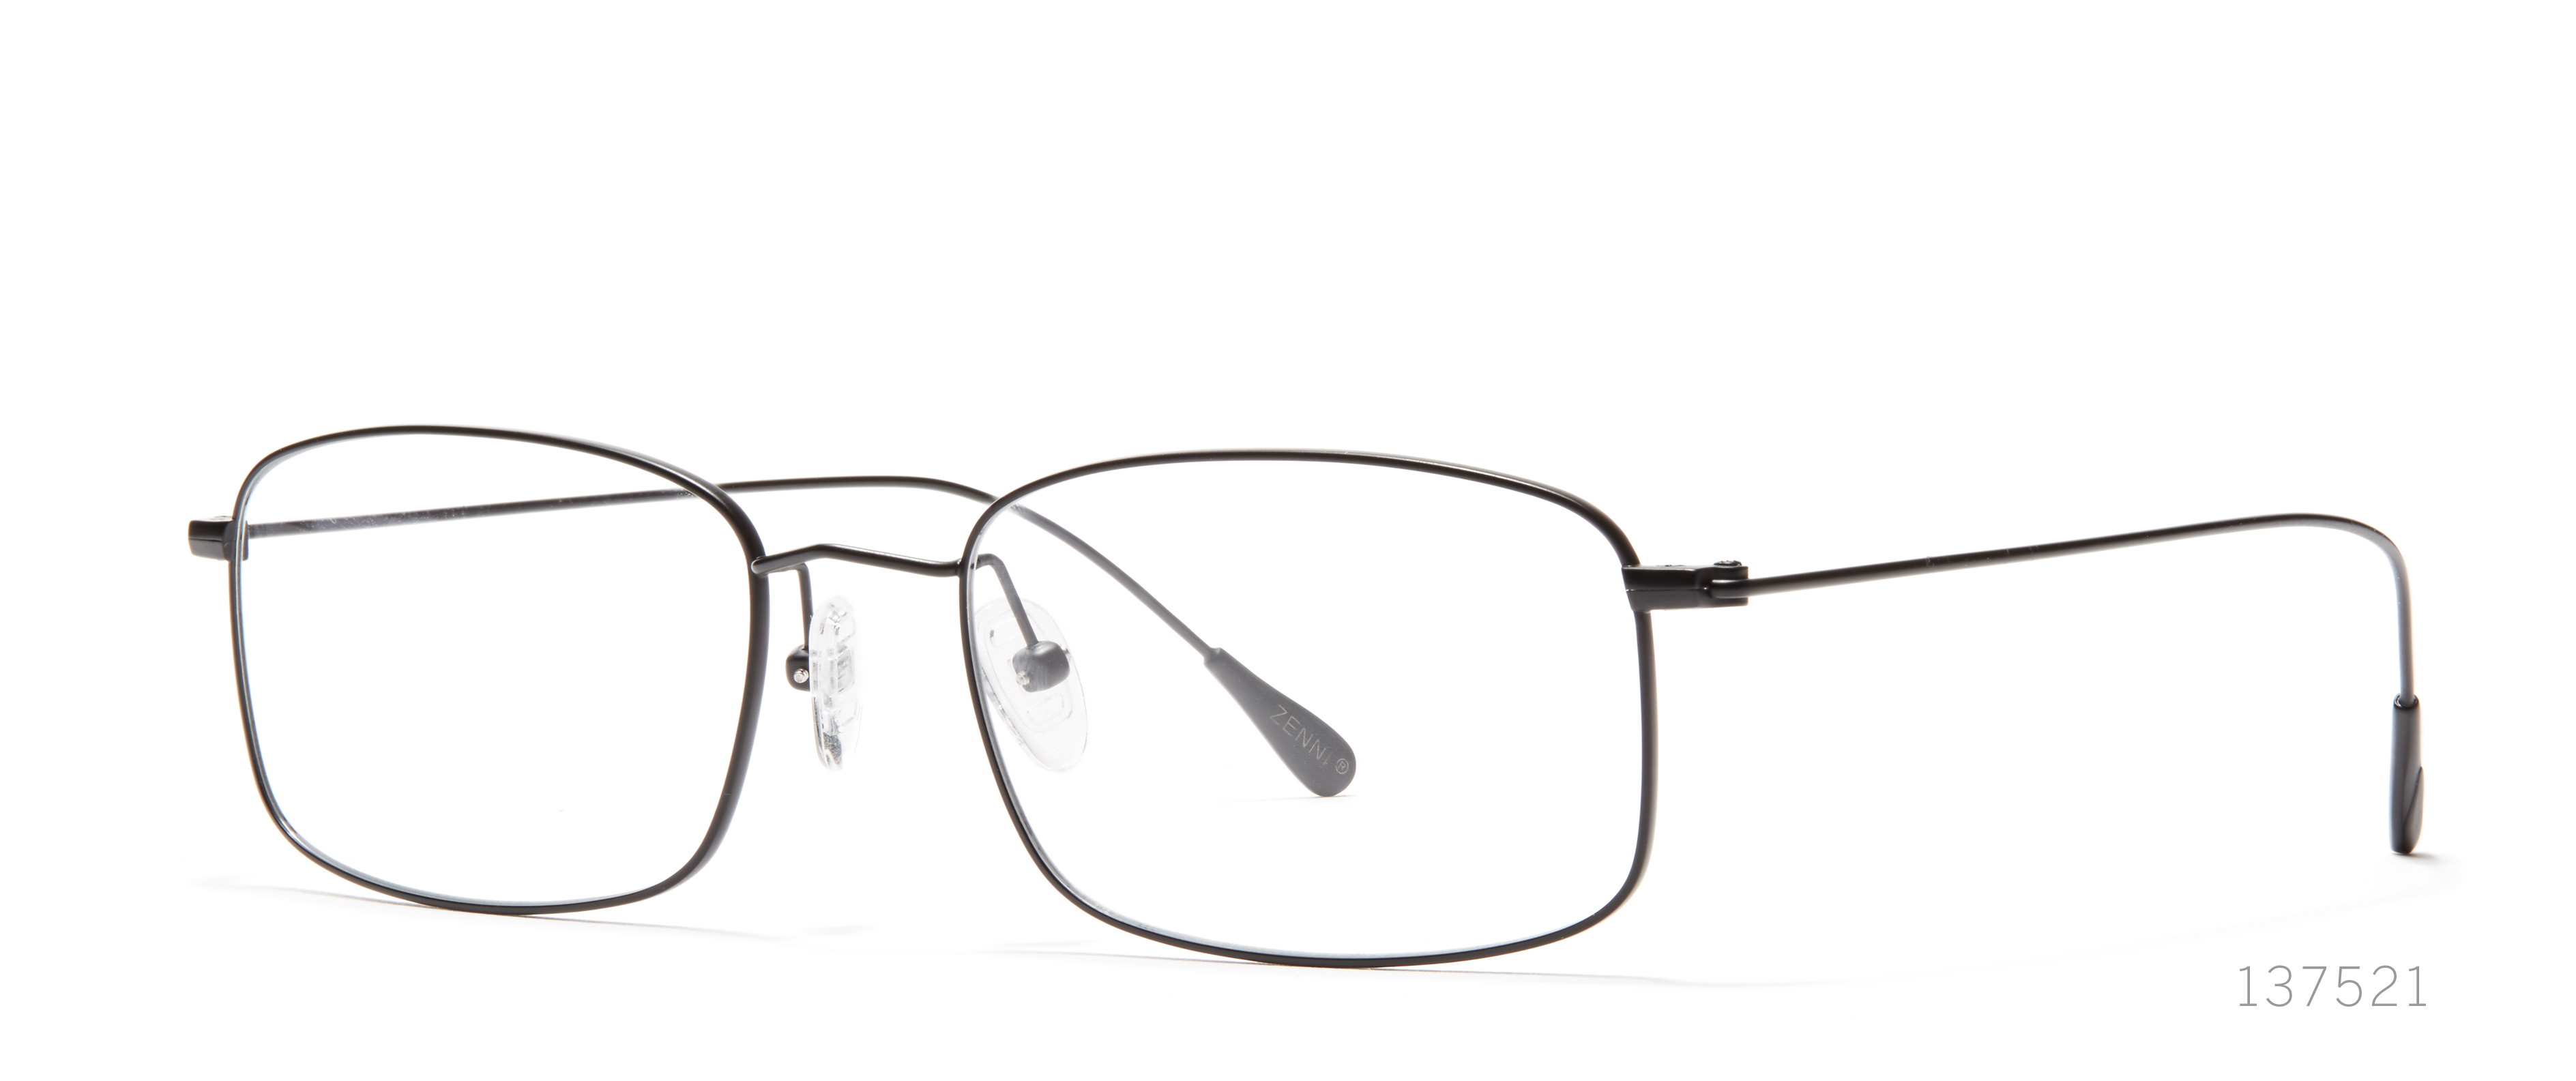 rounded face shape glasses